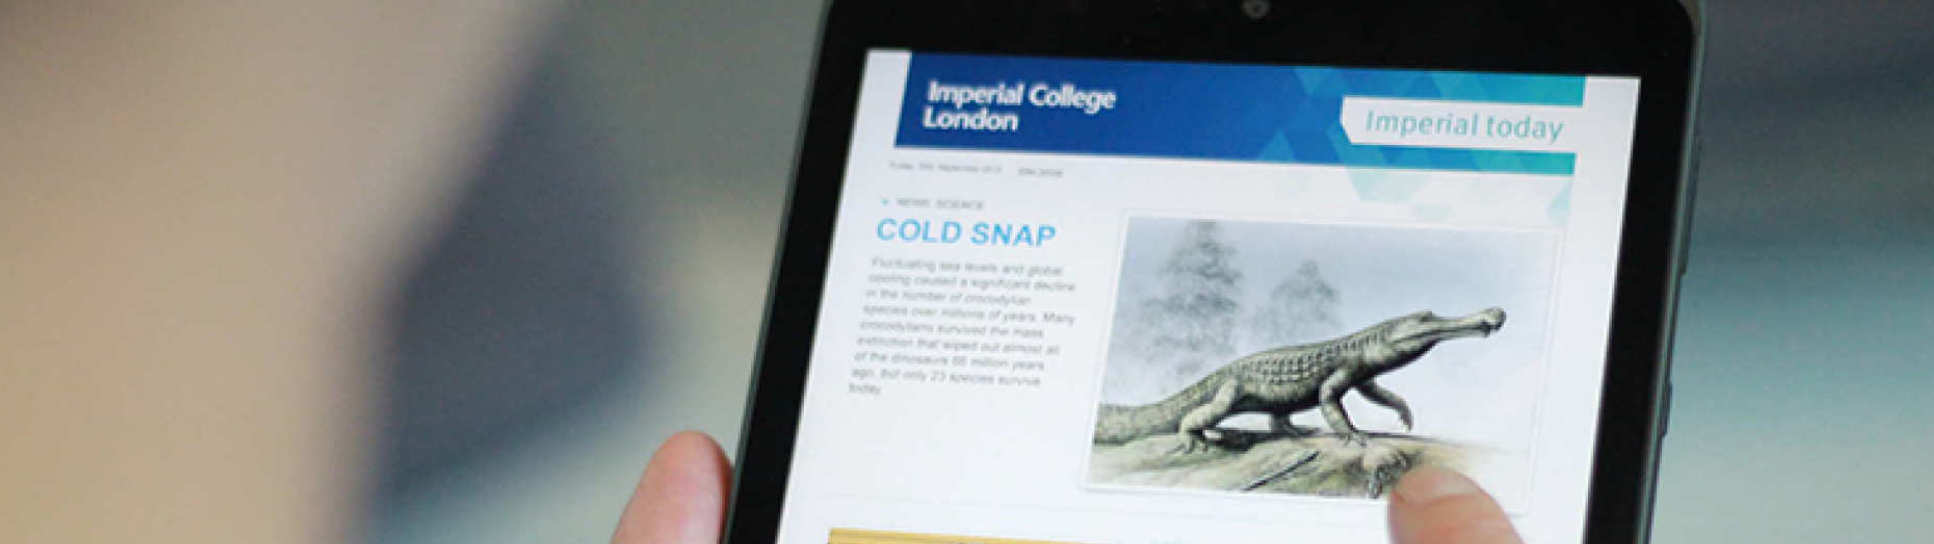 Imperial Today email on an ipad